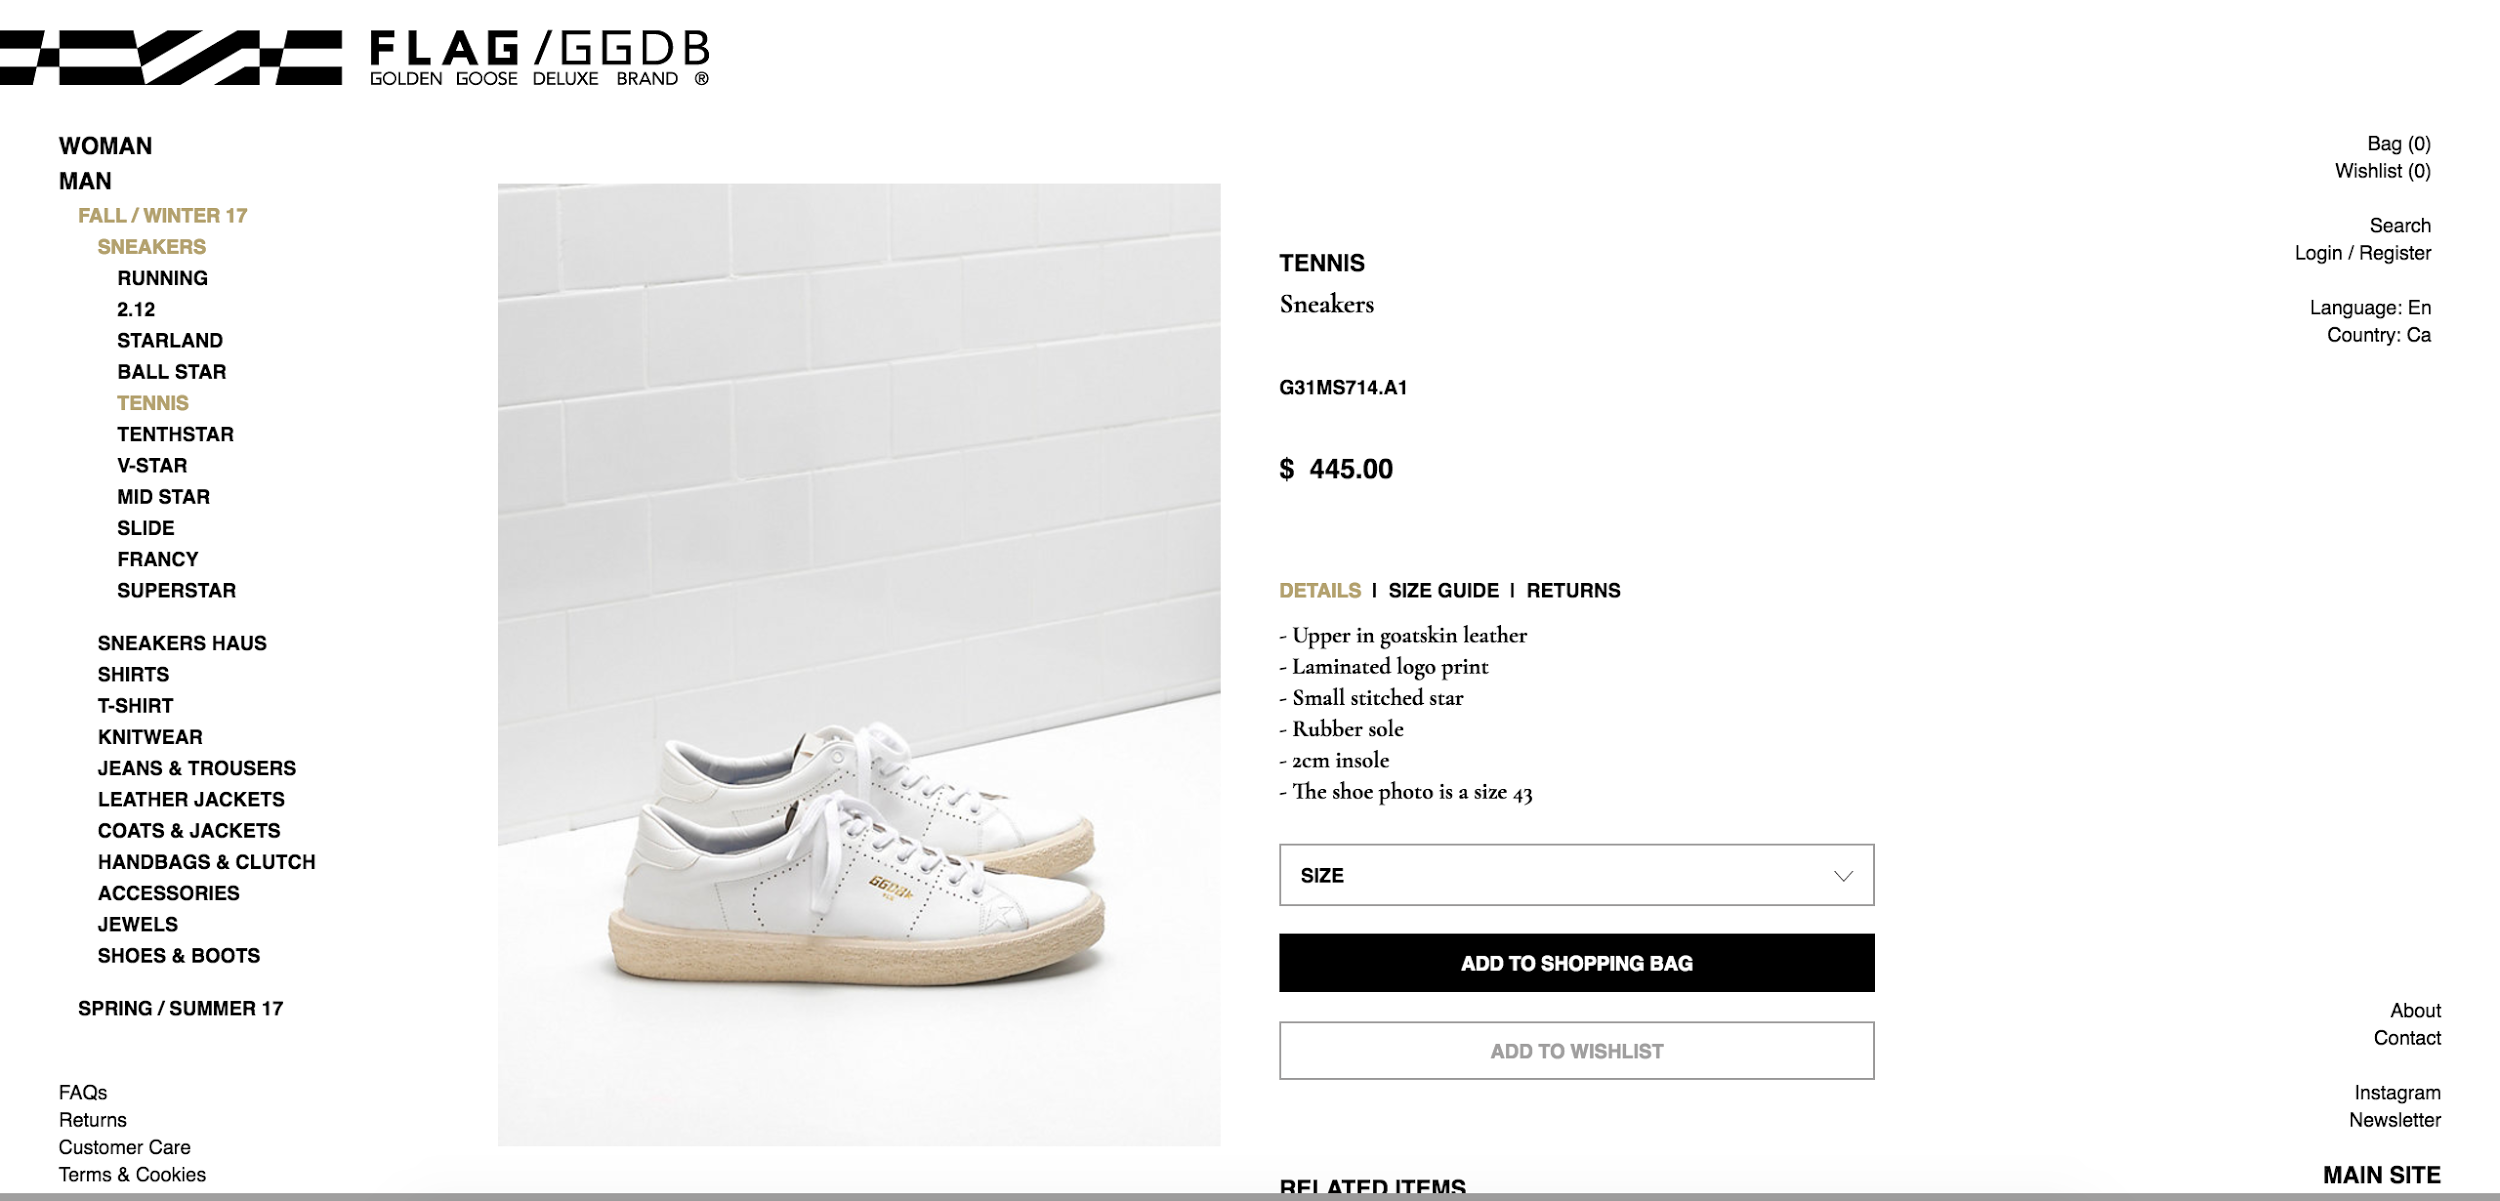 Golden Goose's ecommerce product page is not great on a UX level